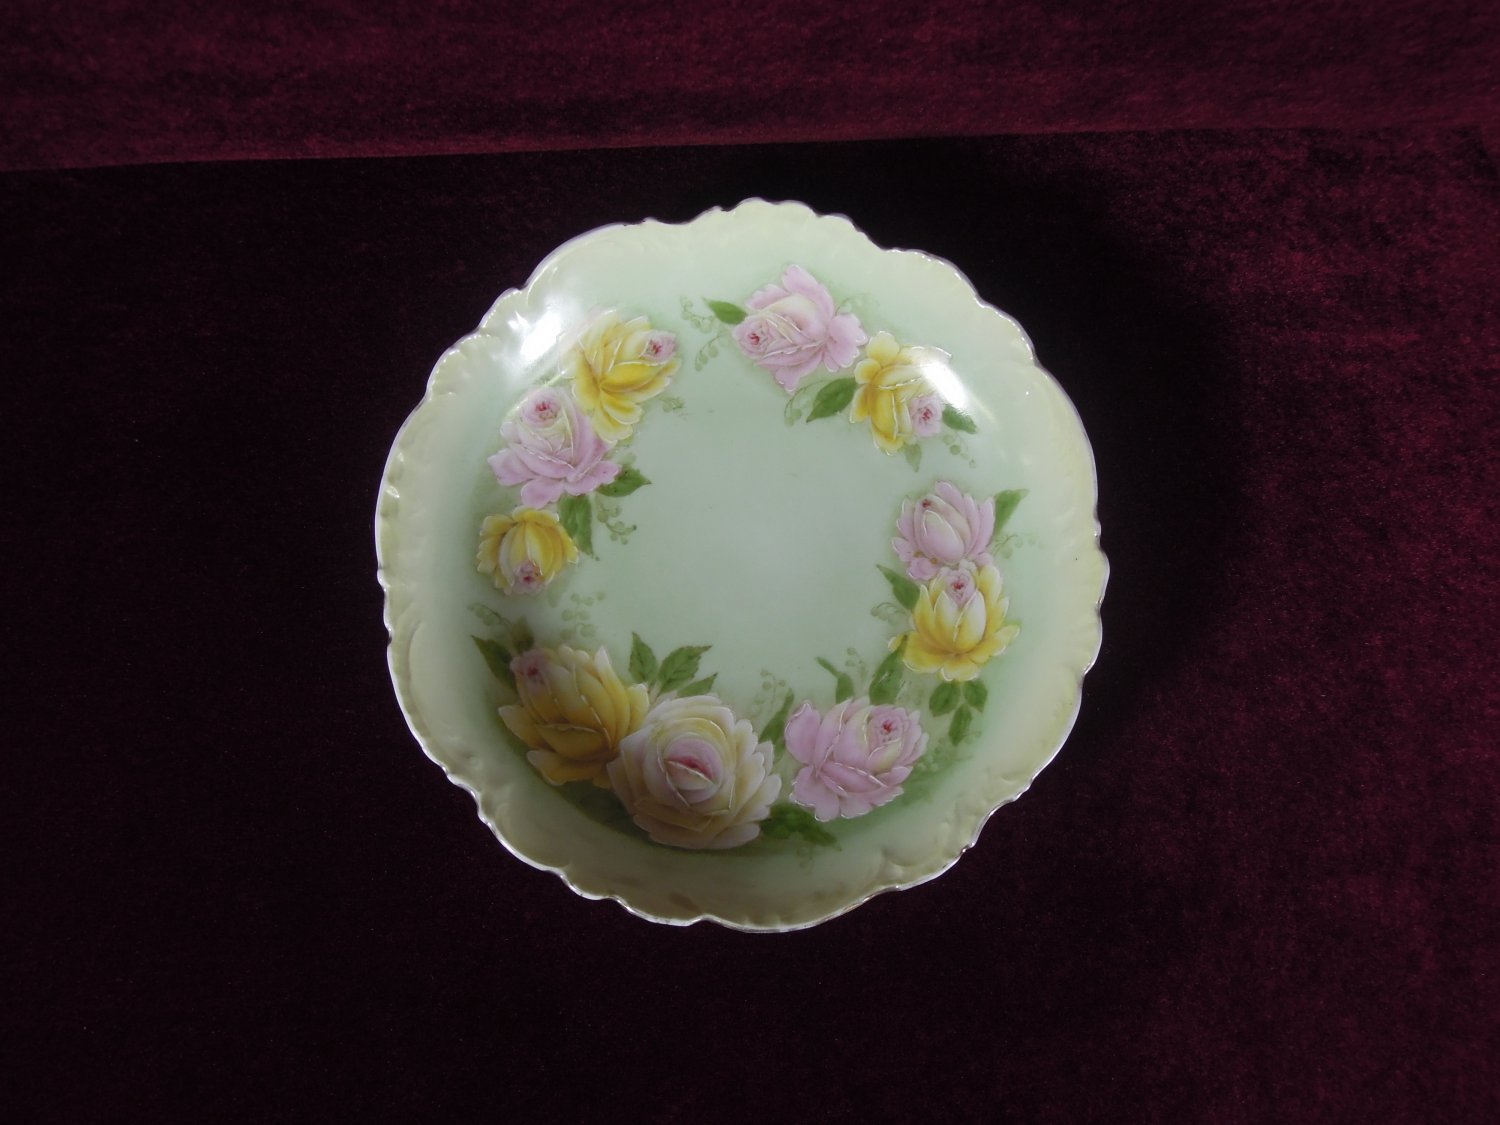 Antique P T Germany Porcelain Plate Roses